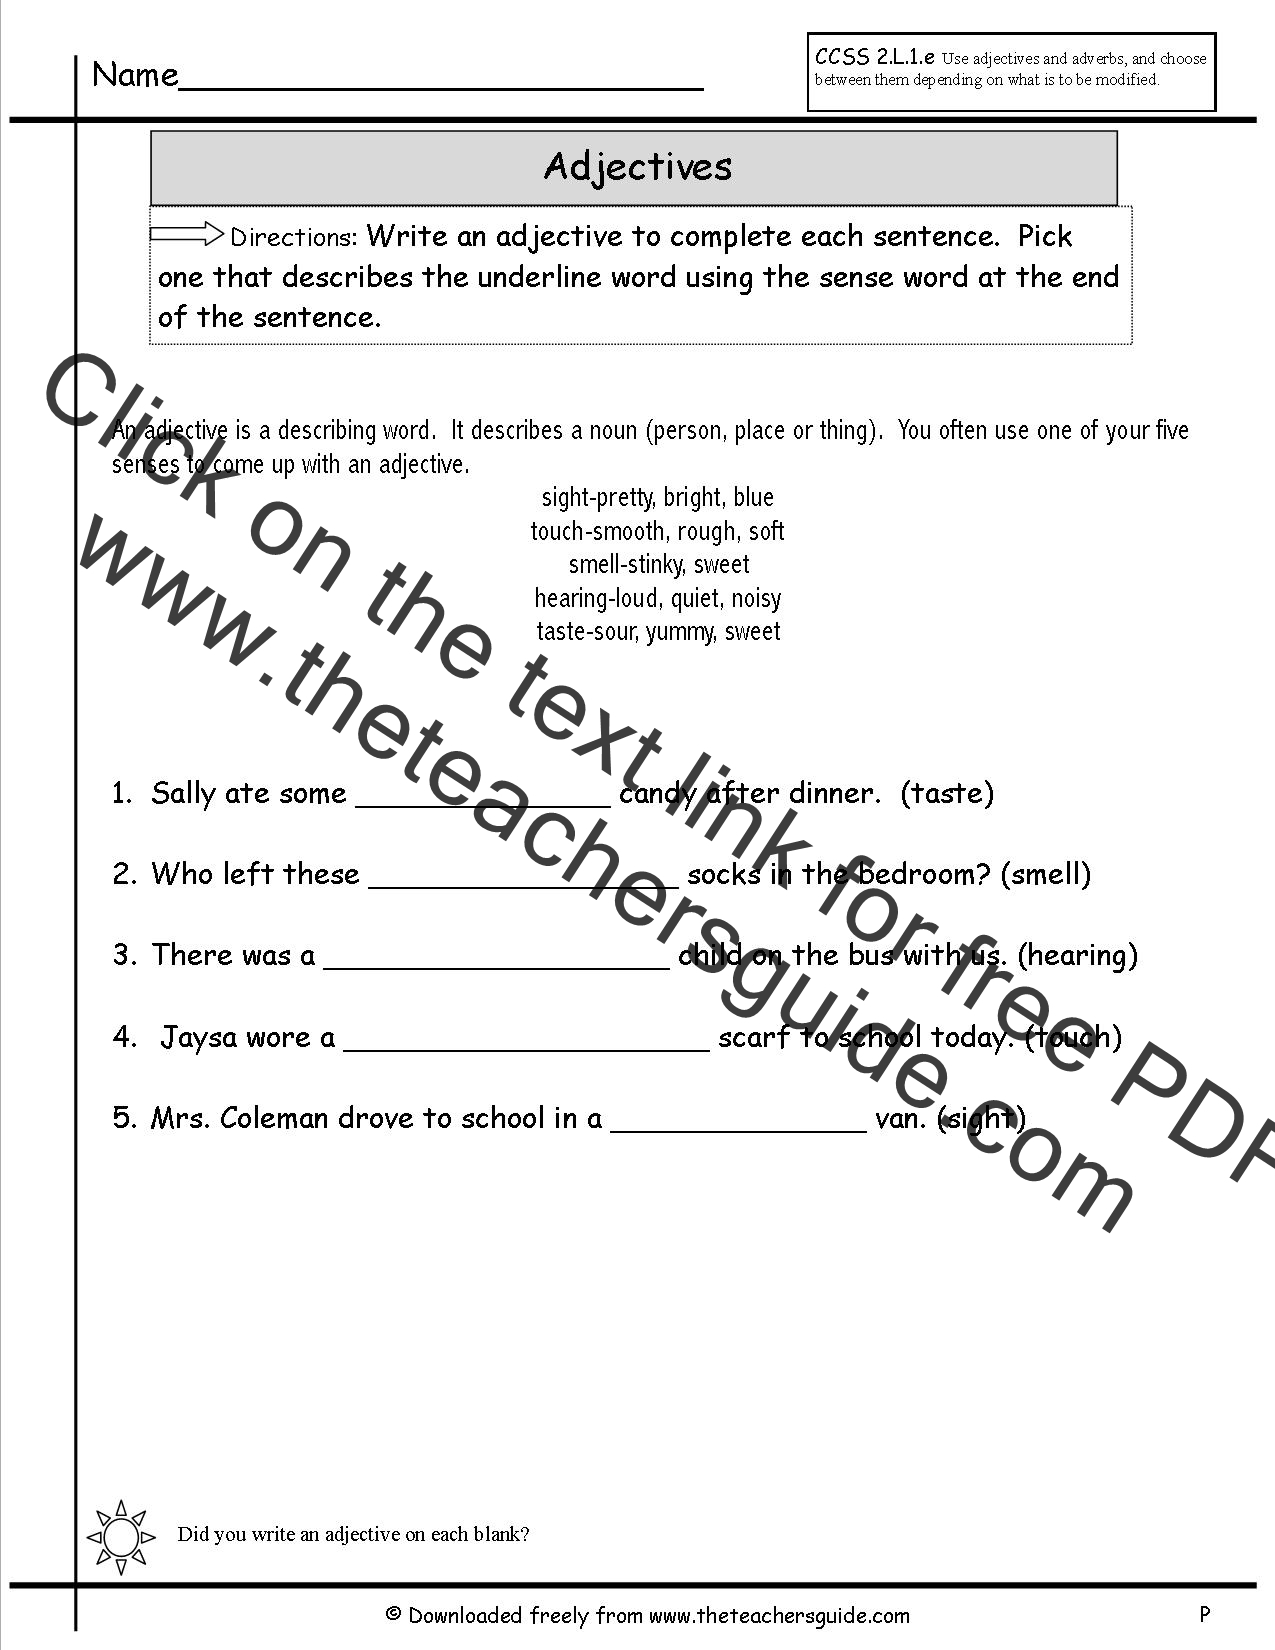 Worksheet Adjectives Exercises Worksheets adjectives worksheets from the teachers guide worksheet